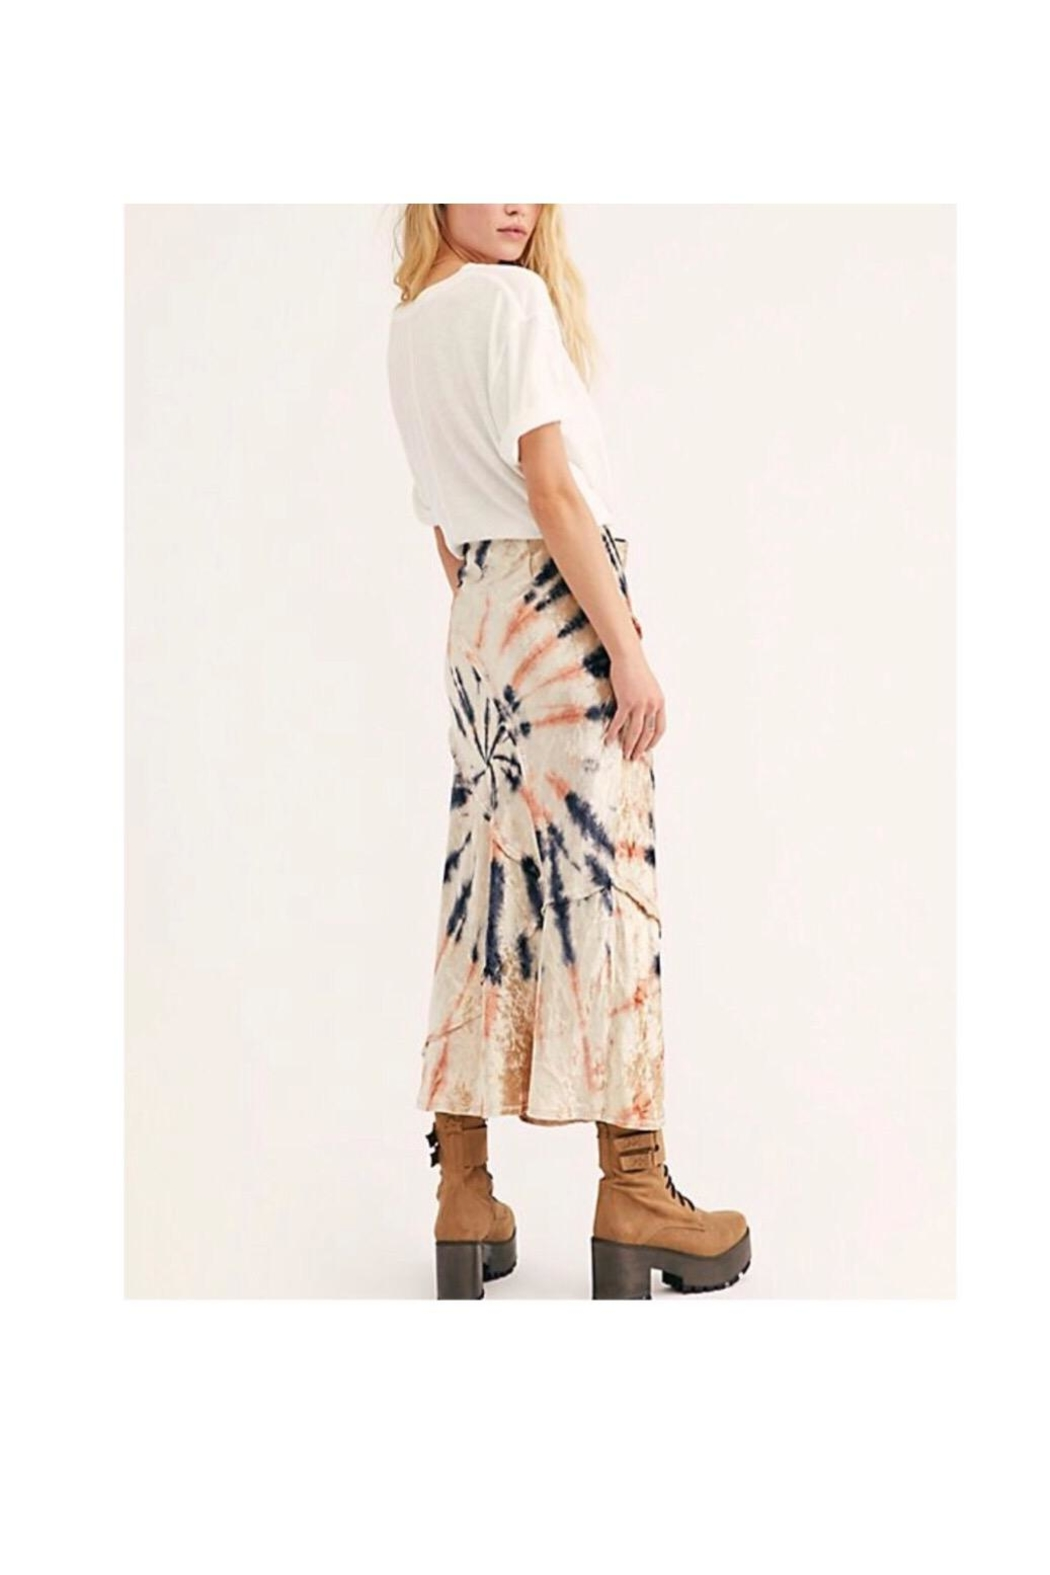 Free People Tie-Dye Maxi Skirt - Front Full Image